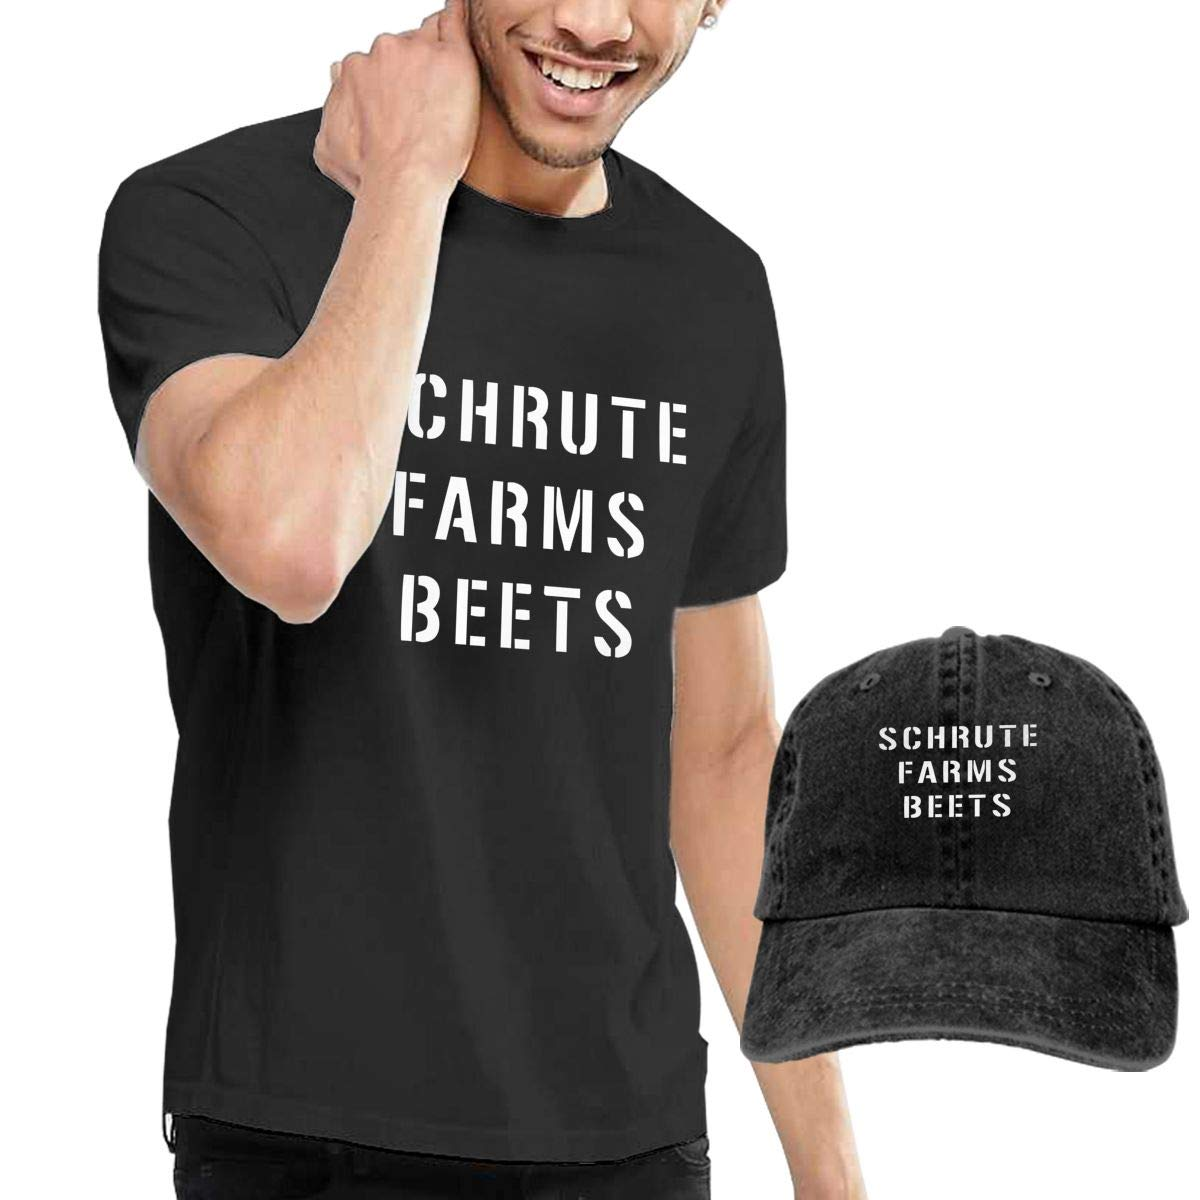 WWTBBJ-B Schrute Farms Beets Adult Mens Sportstyle T Shirt and Outdoor Jean Hat